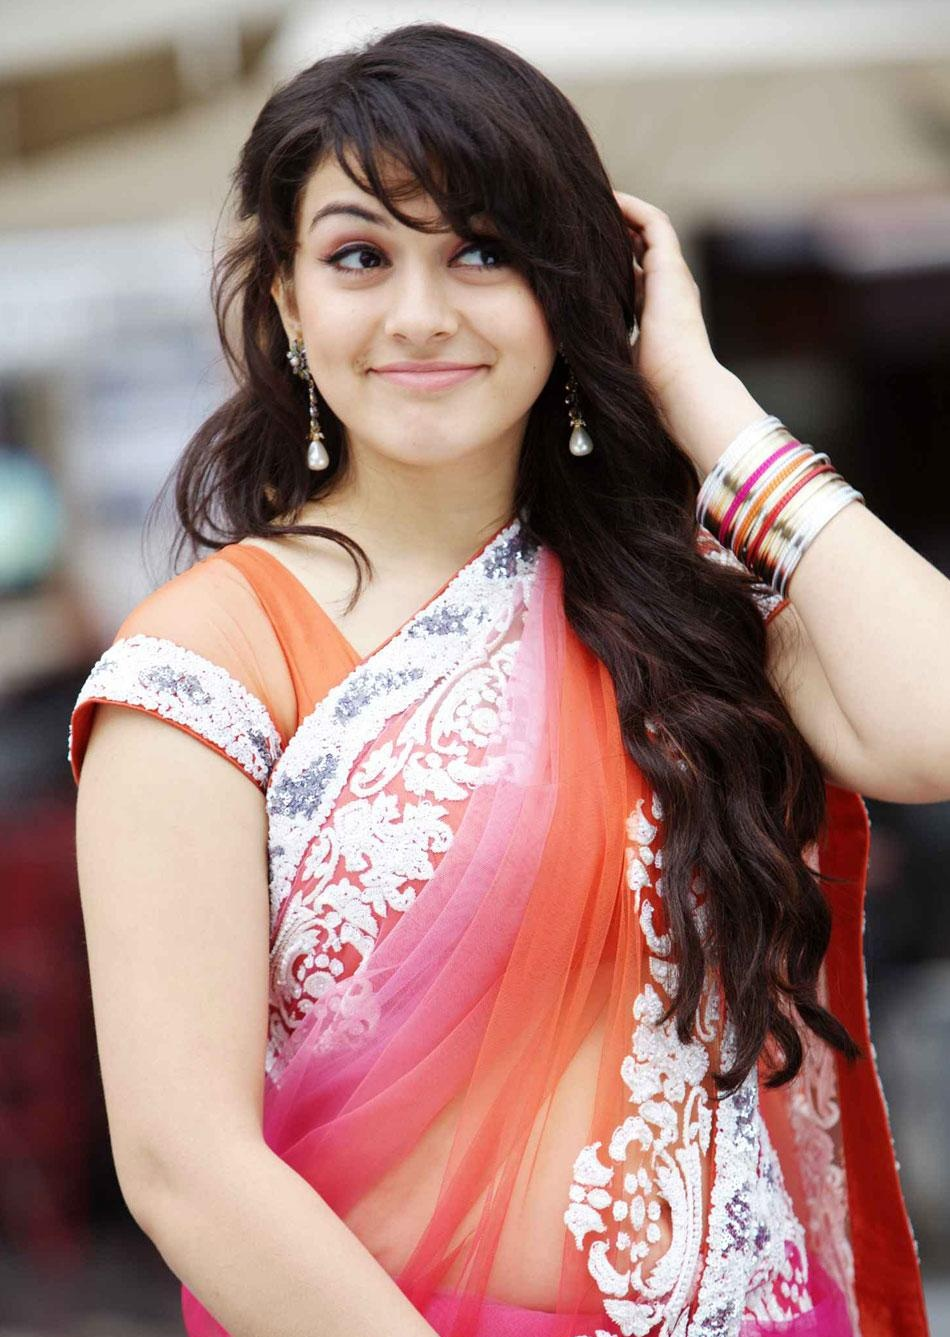 Indian-filmstar-celebrity-cine-actress-movie-star-film-heroine-Hansika-Motwani